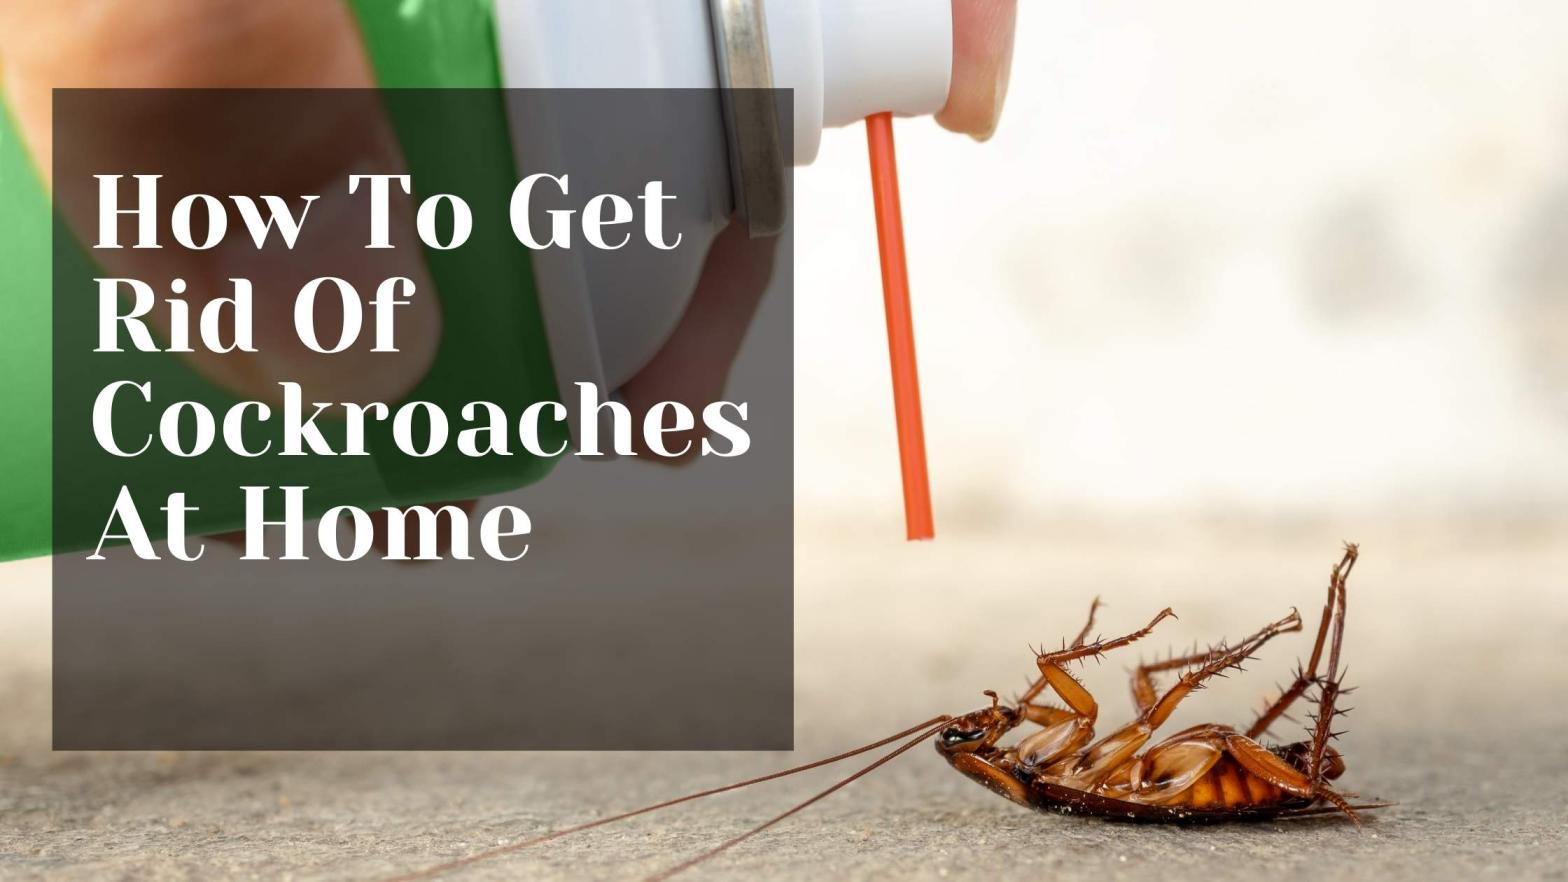 How To Get Rid Of Cockroaches At Home